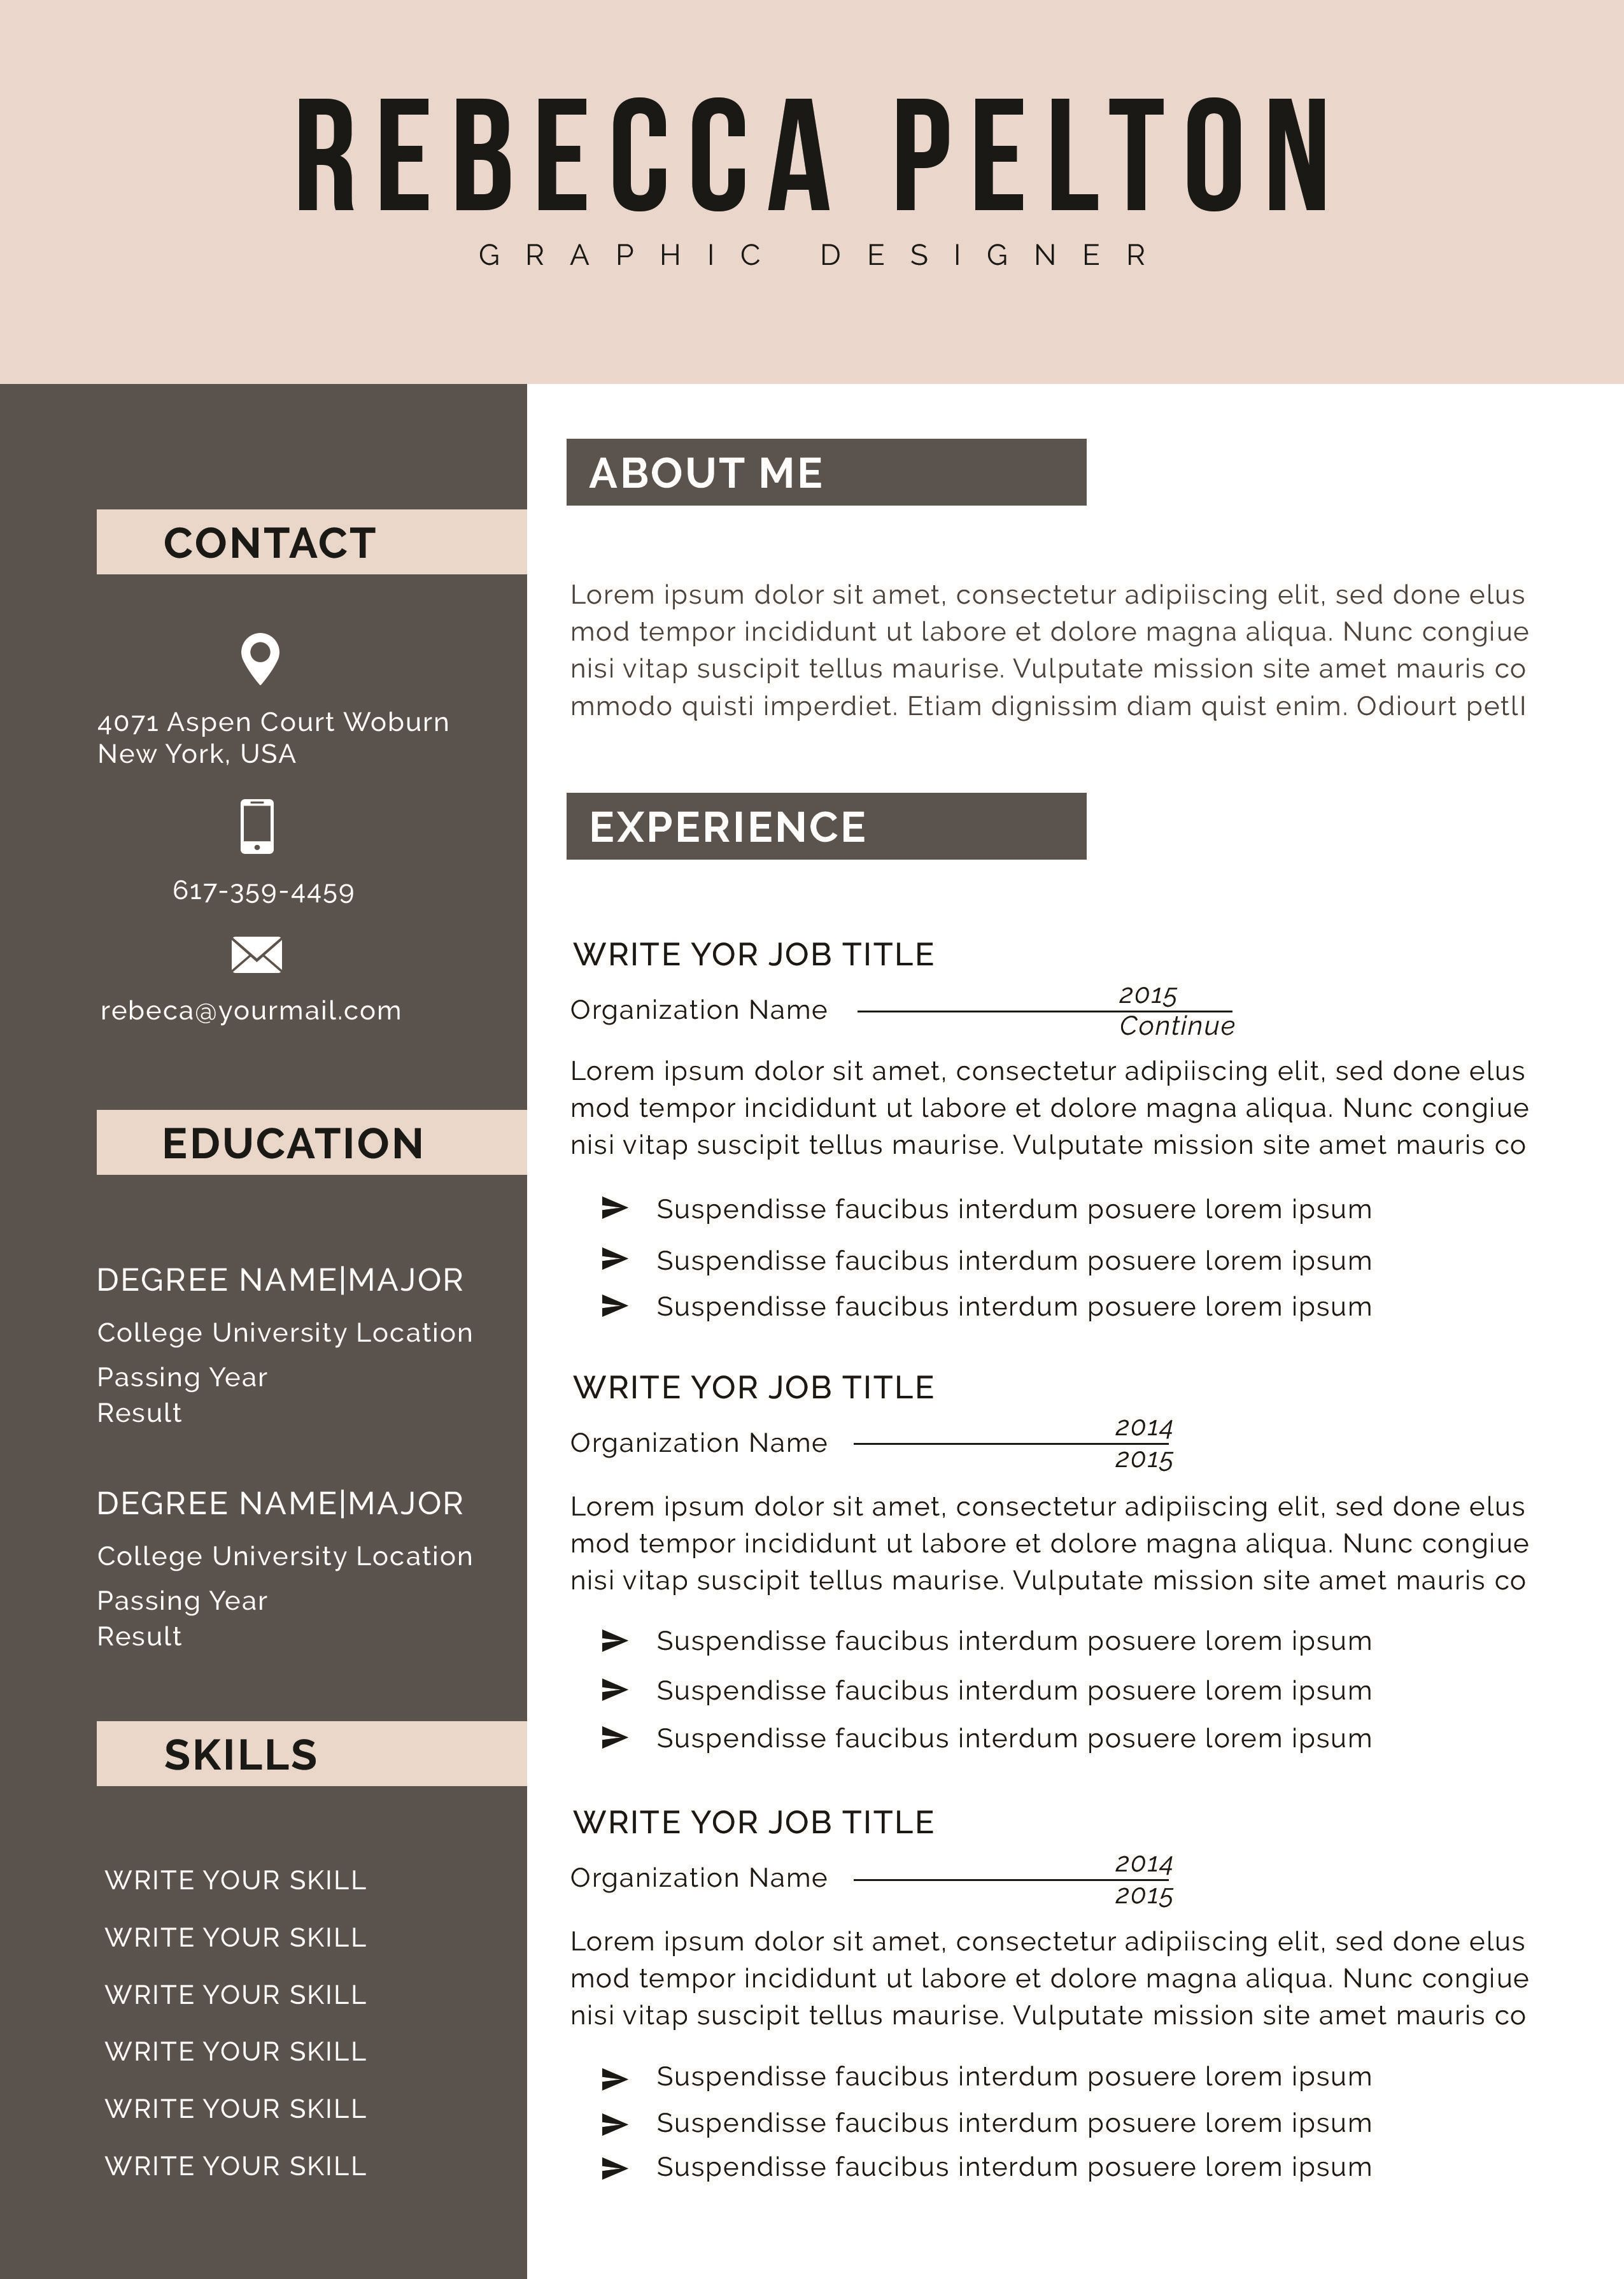 002 Frightening Professional Cv Template 2019 Free Download Inspiration Full